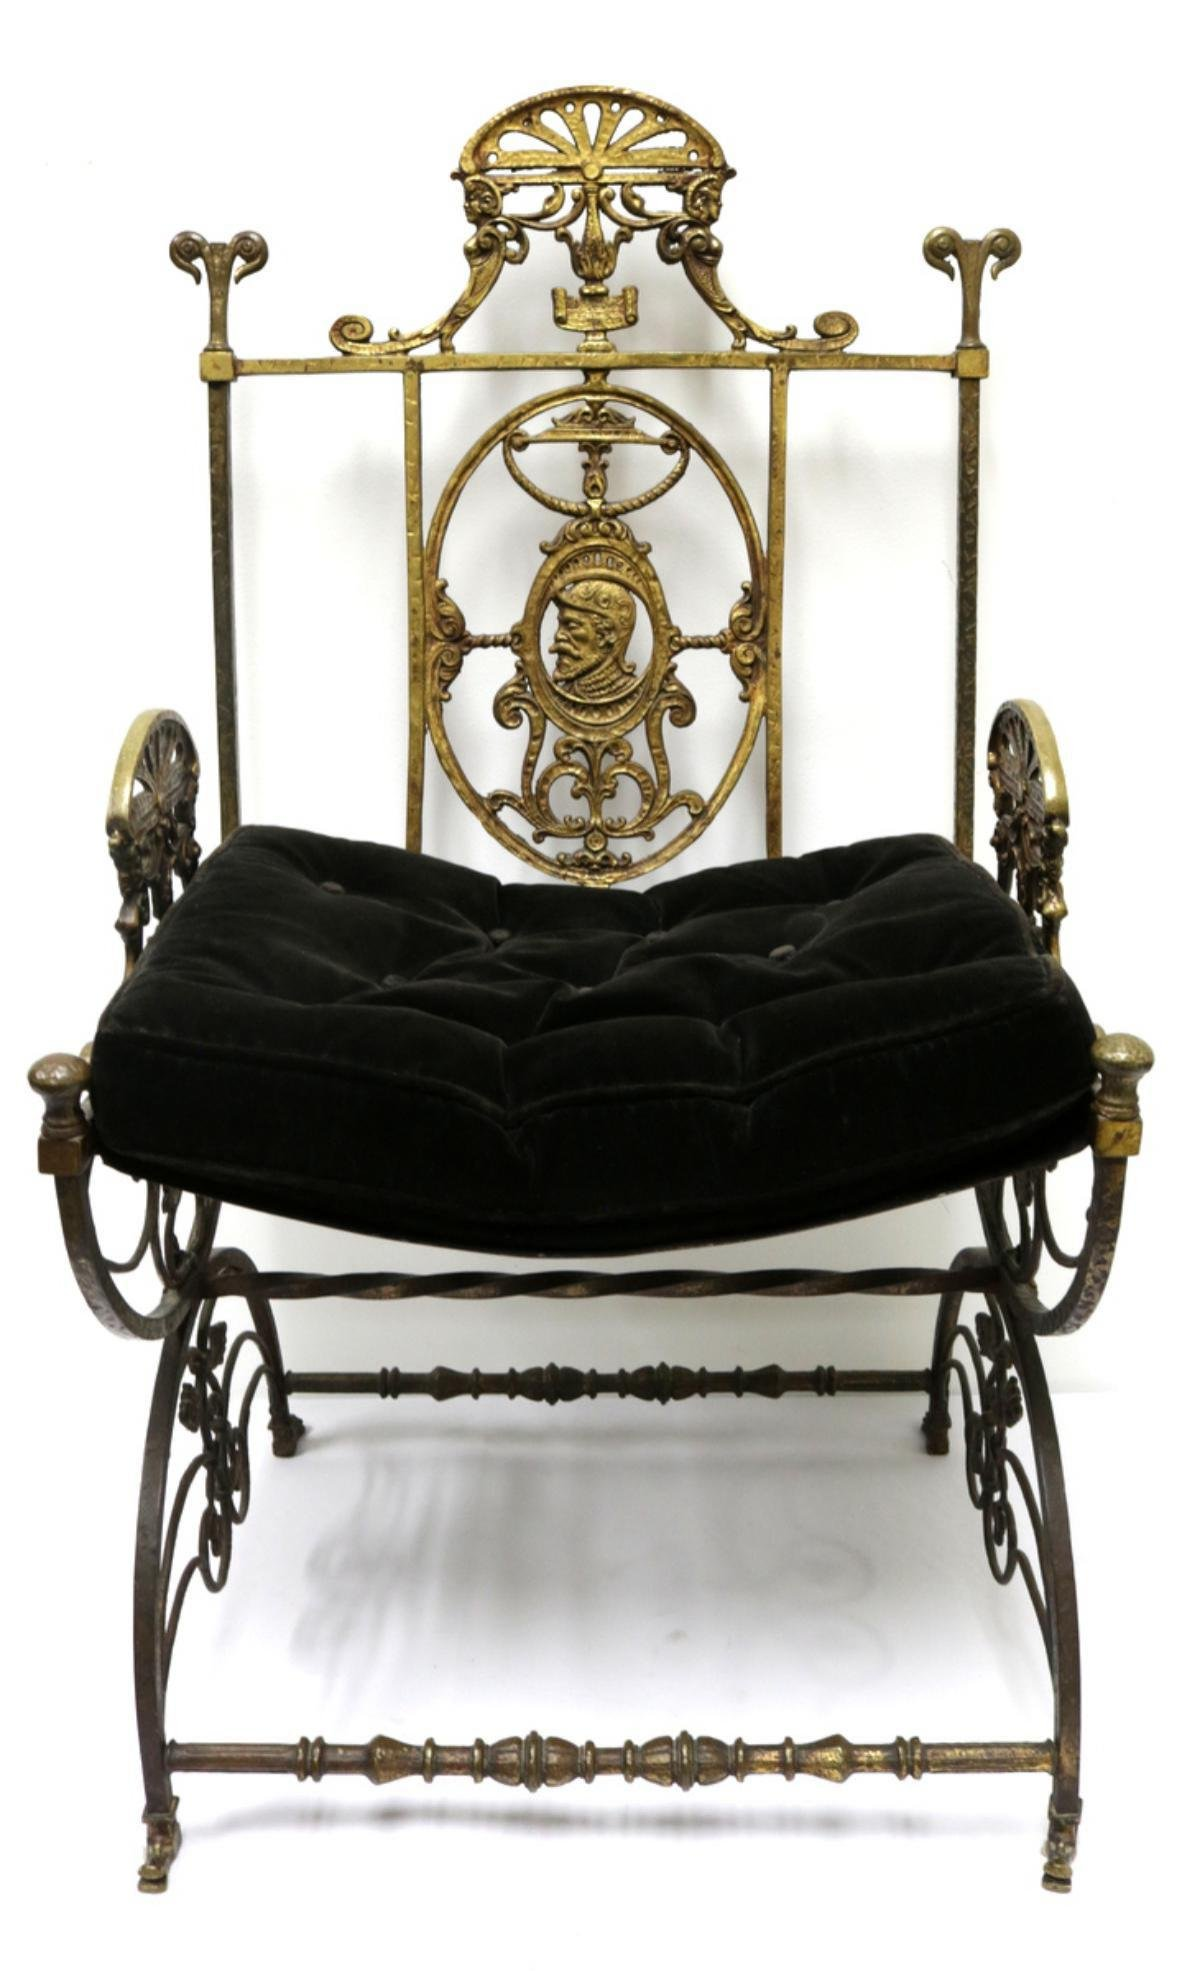 Antique Neoclassical Throne Chair